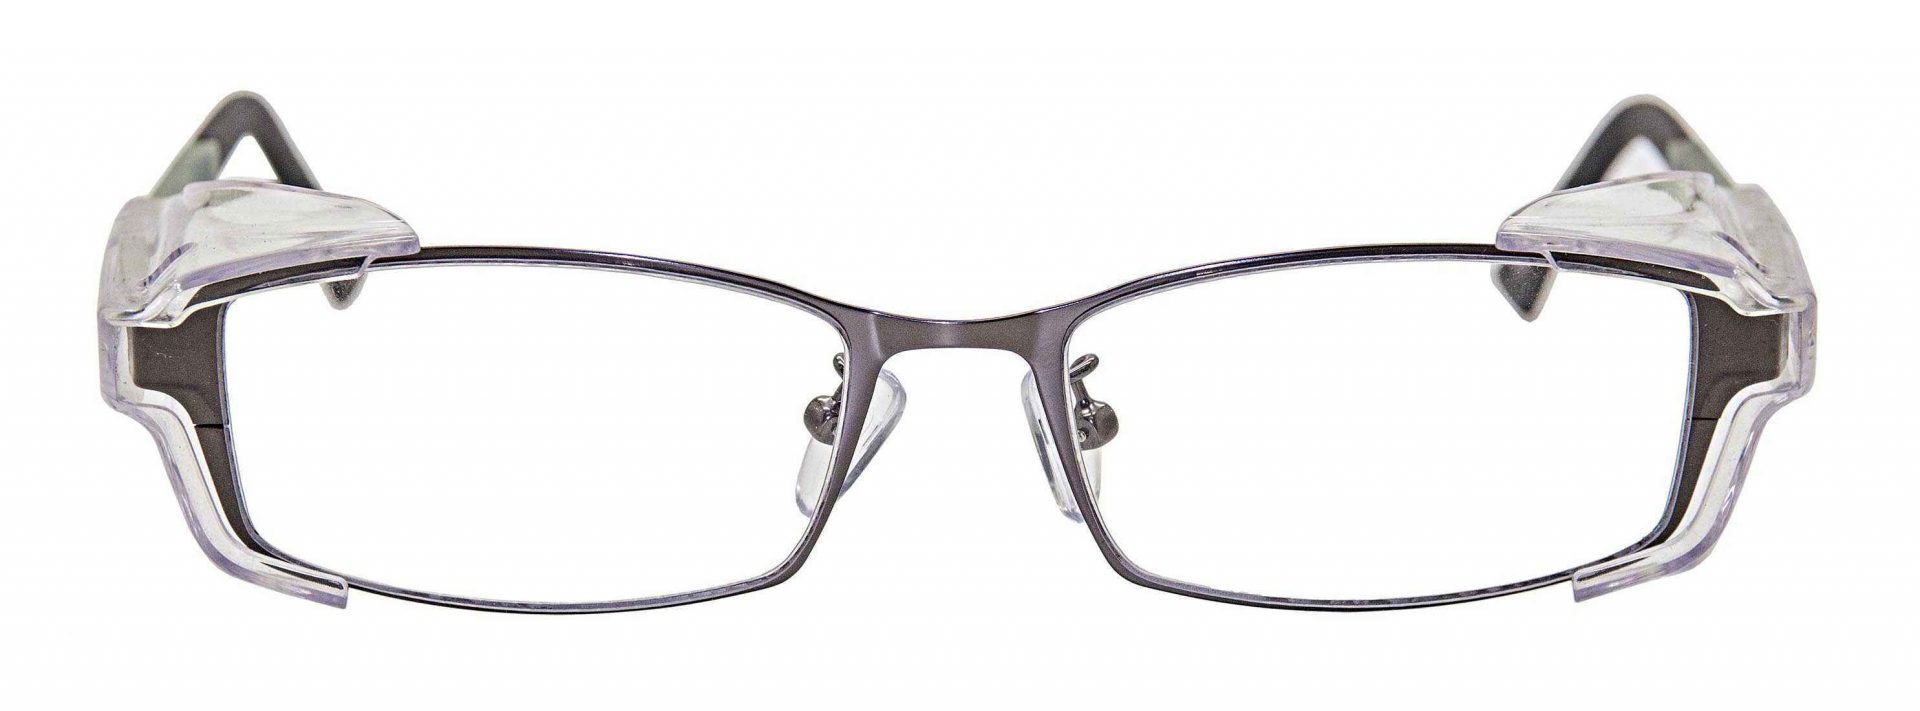 WorkSafe spectacles: Safety Glasses Venus 01 2970x1100